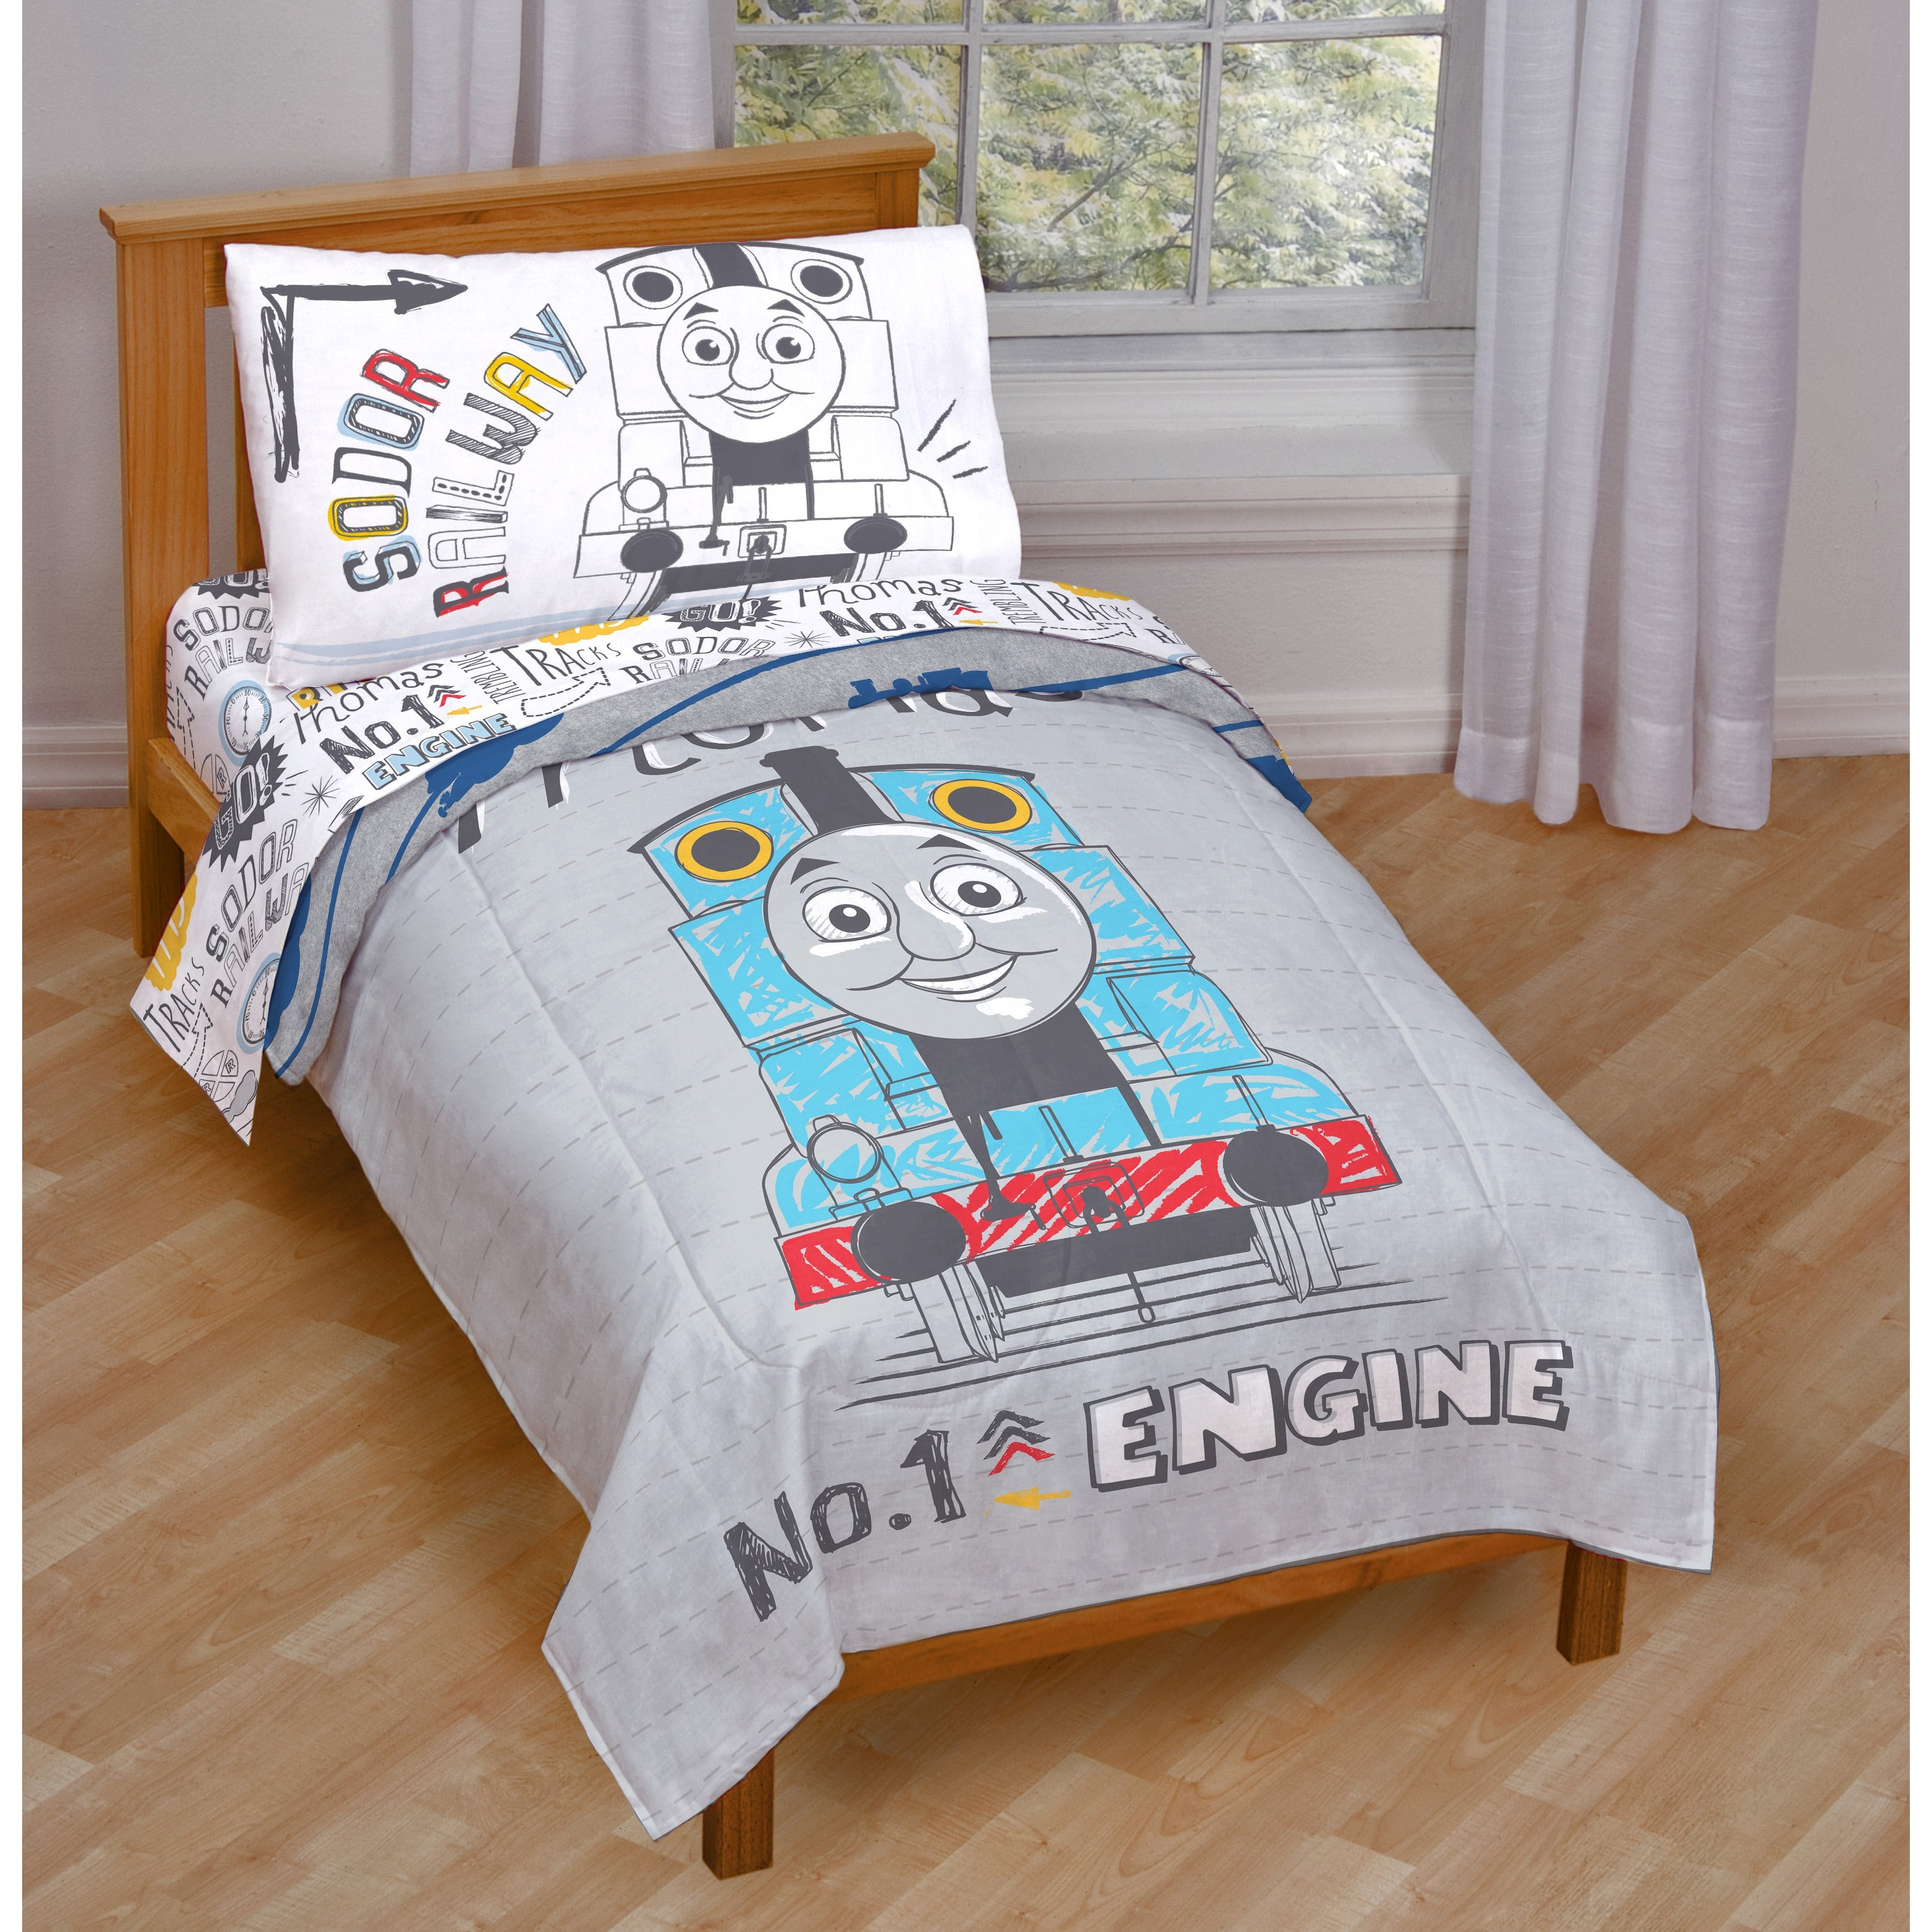 Shop Thomas the Tank Engine Doodle Days Toddler 4 piece Bed in a